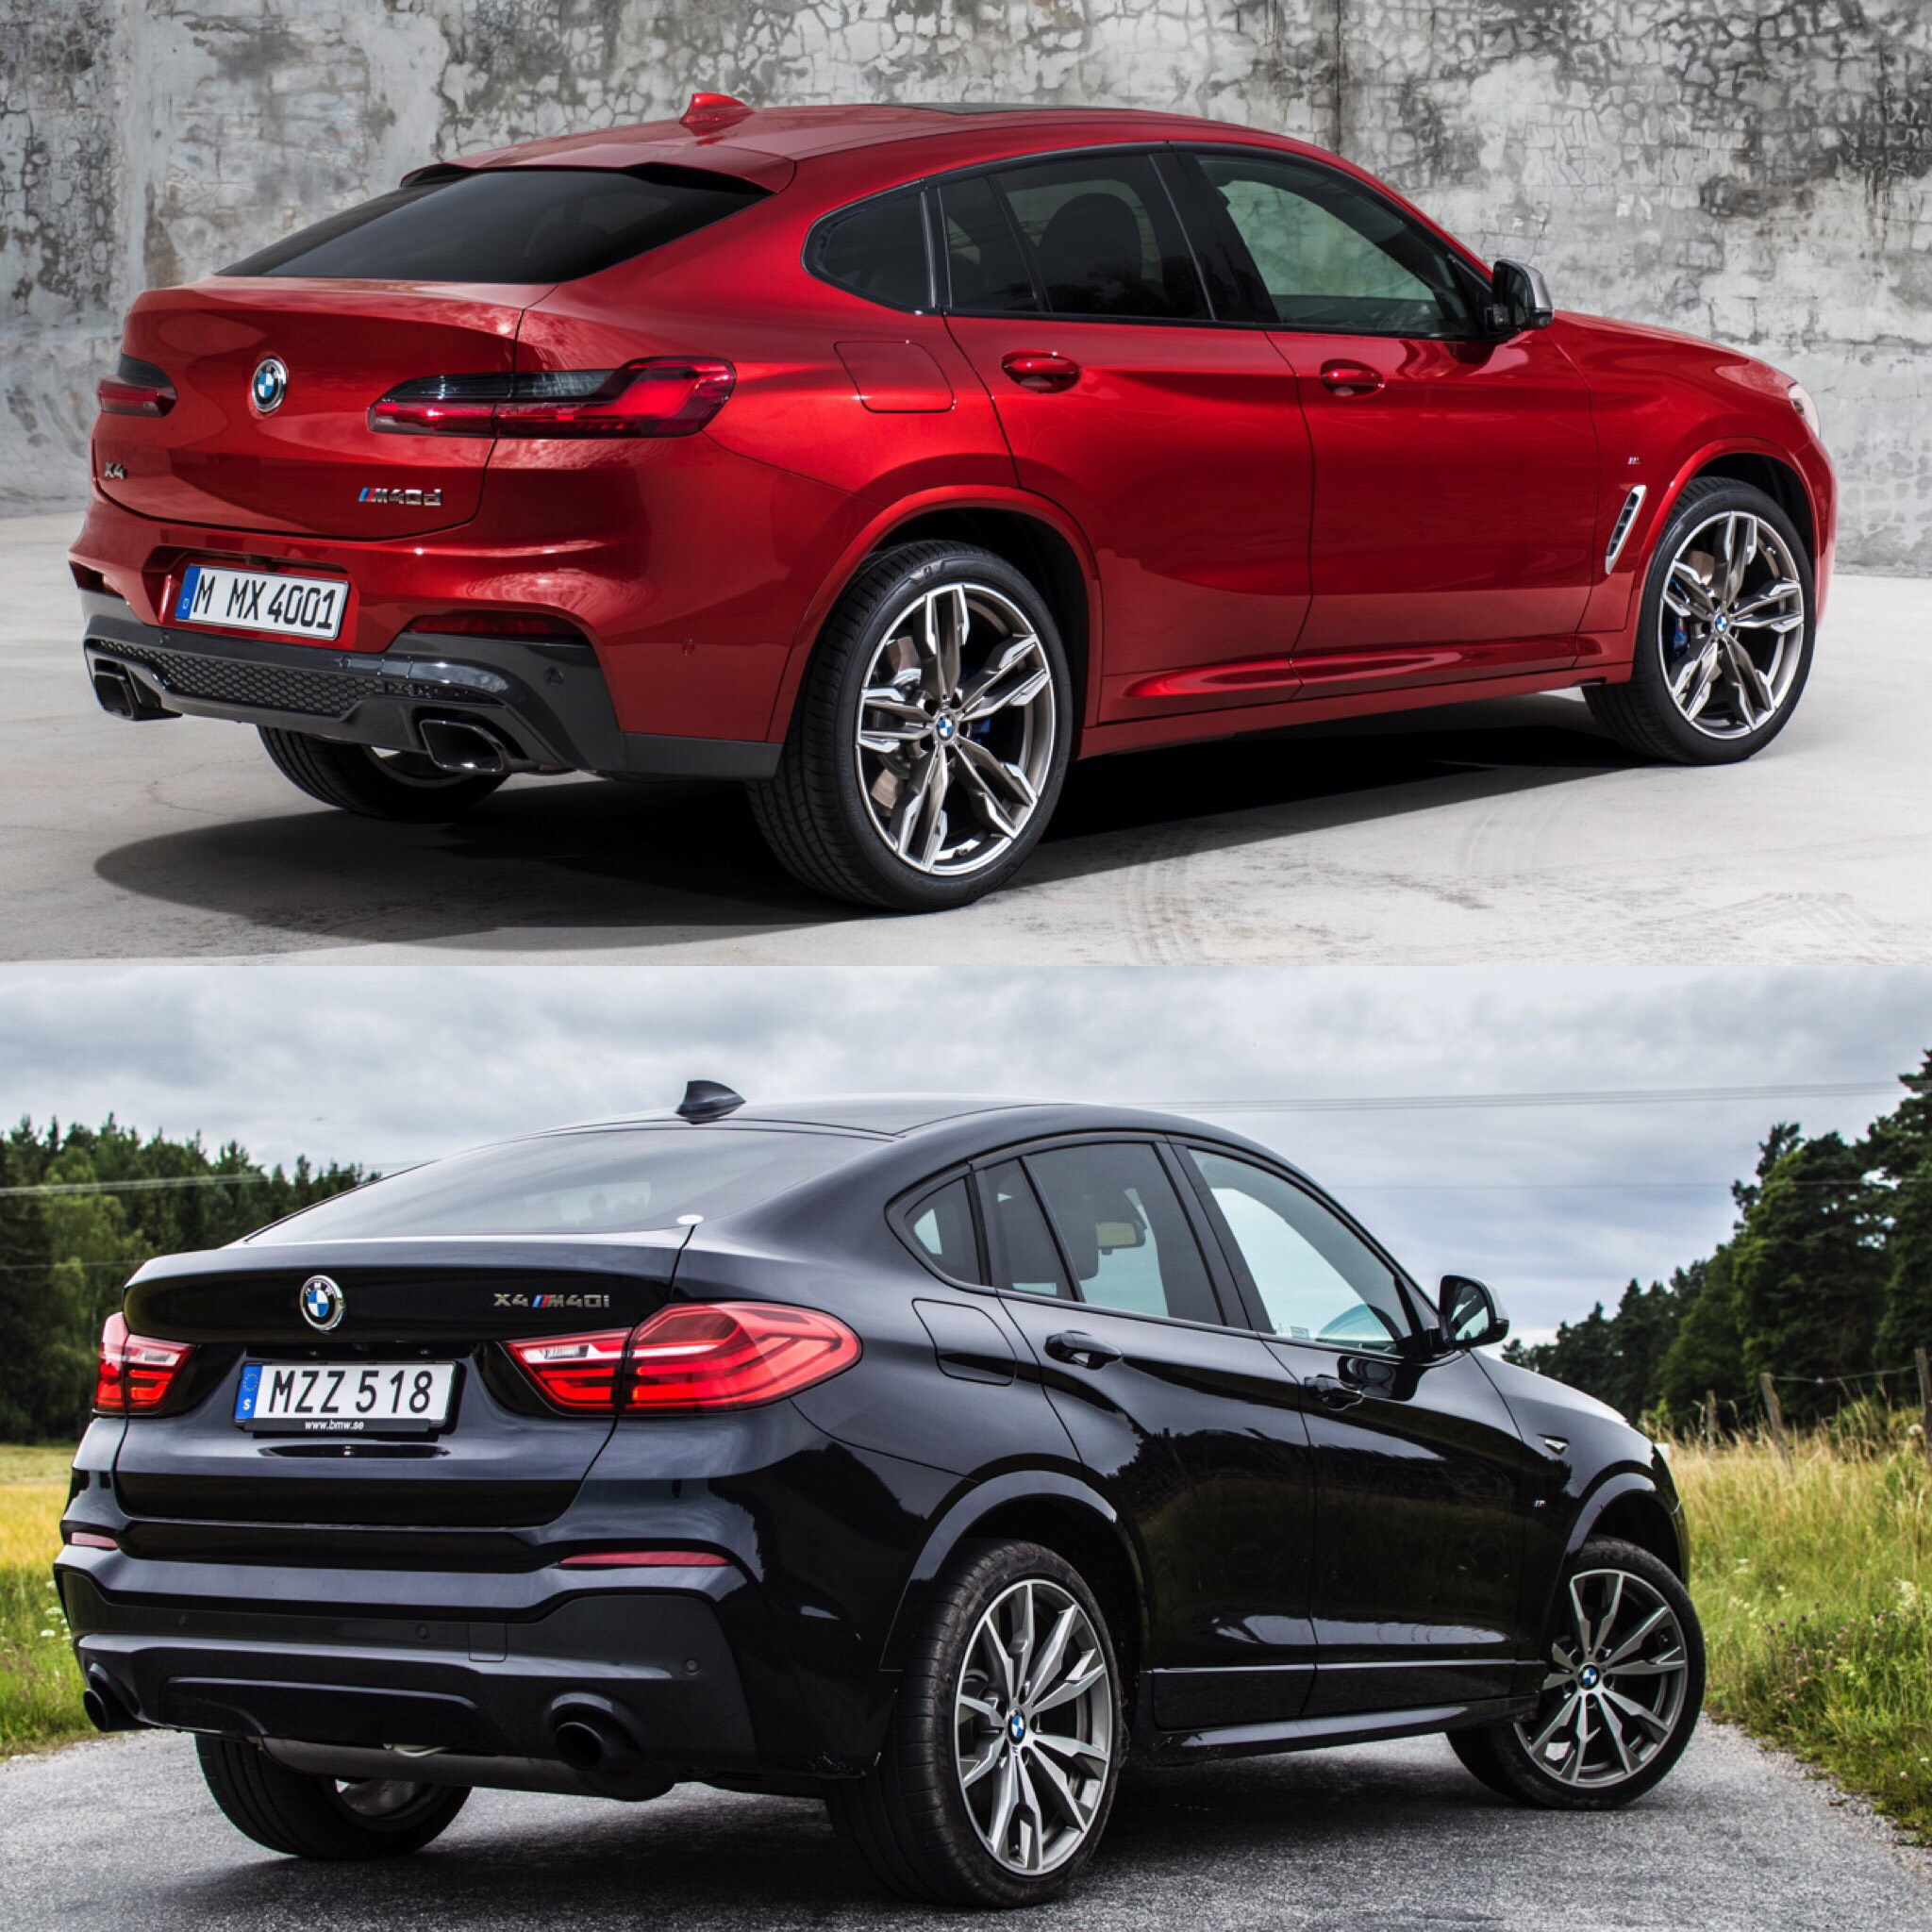 New Bmw 7 Series >> Photo Comparison: F26 BMW X4 vs G02 BMW X4 -- Old vs New